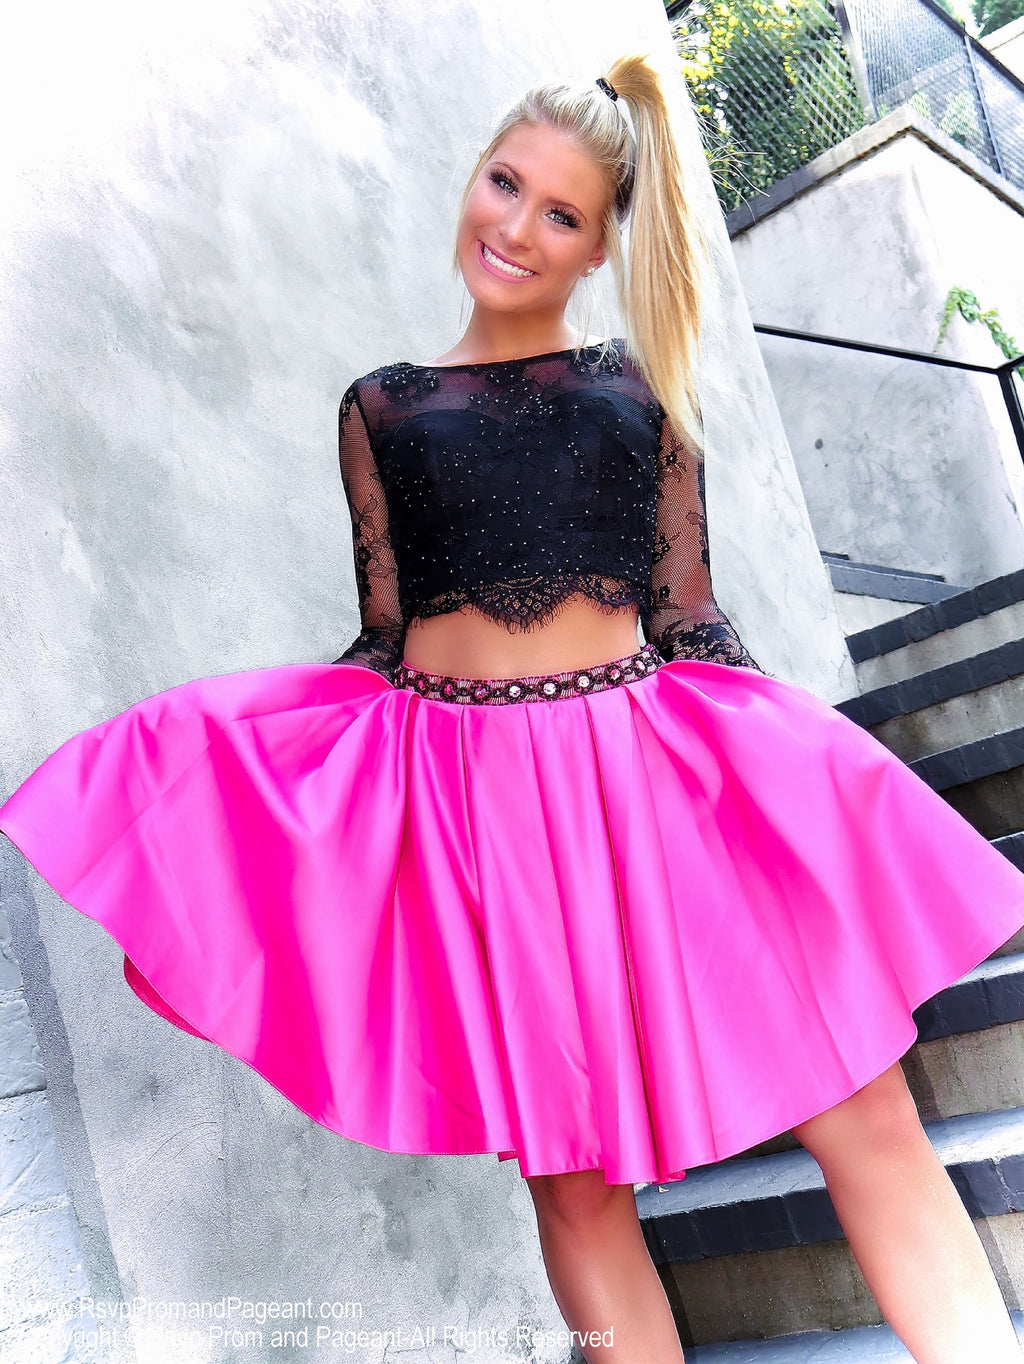 Blonde model in Fun Two Piece Short Homecoming Dress with Black Lace Top with Sleeves at Rsvp Prom and Pageant, best prom dress store located in metro Atlanta, Georgia